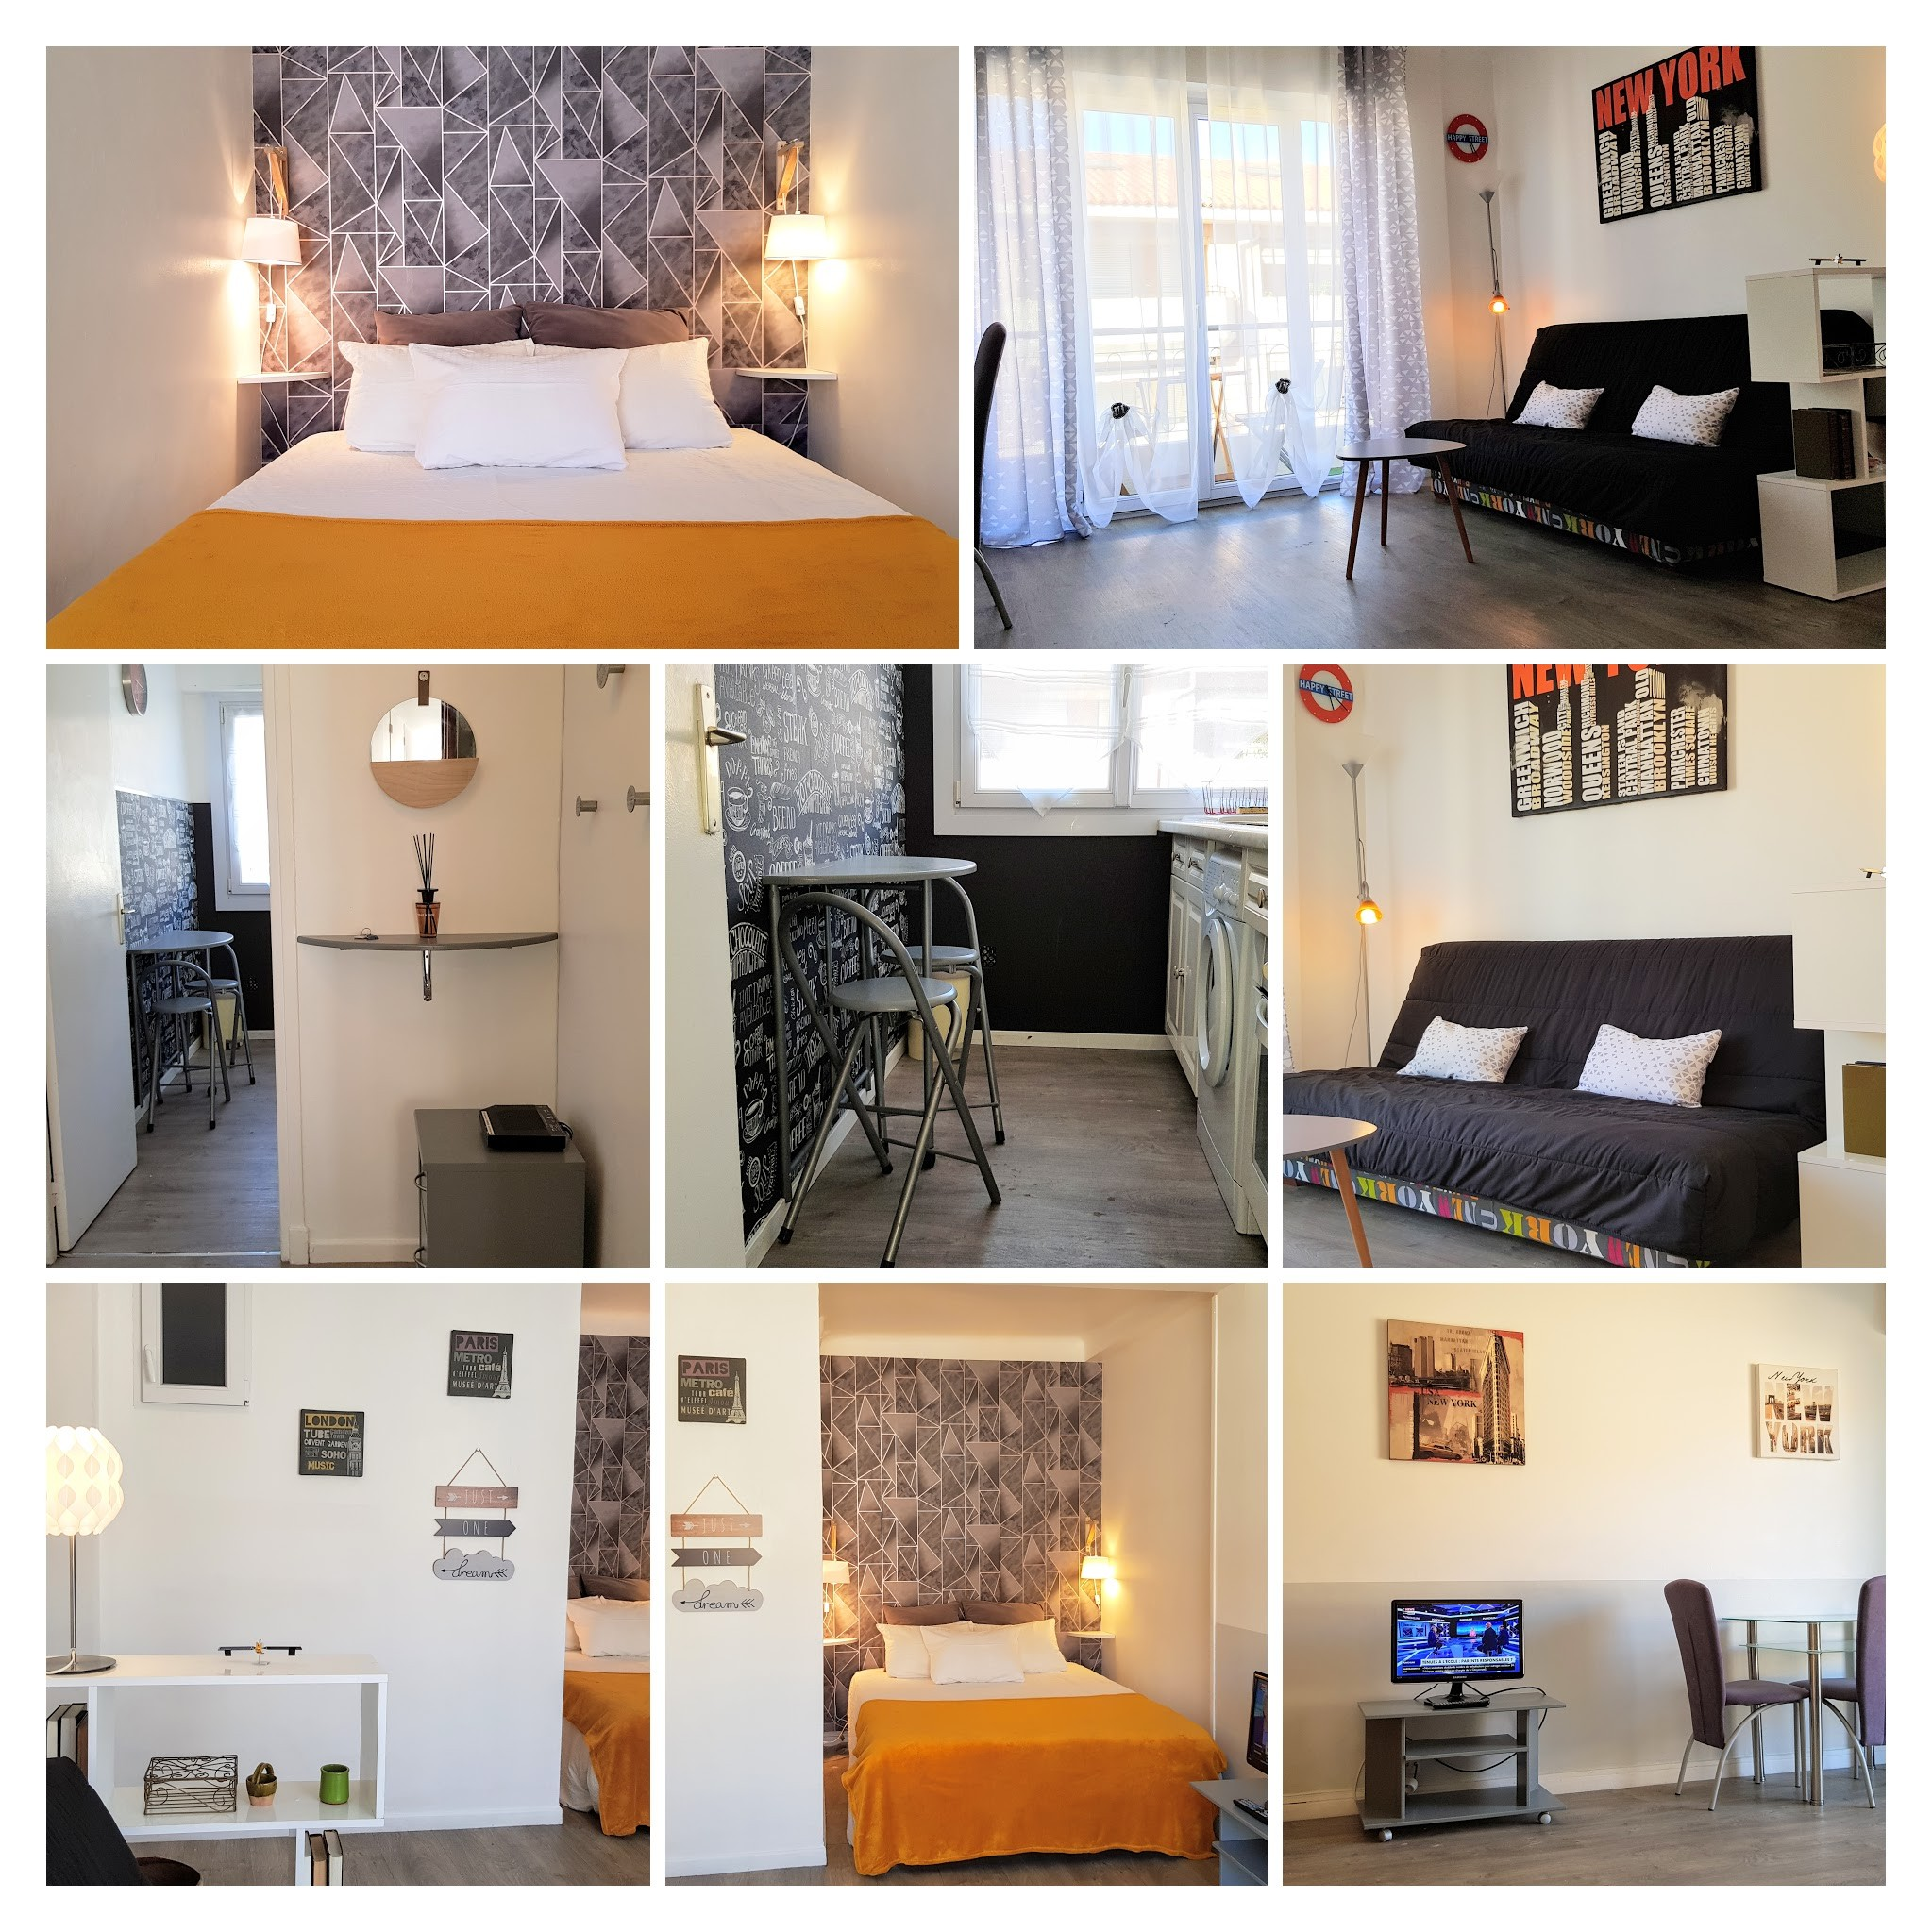 Home staging Studio Rue pasteur